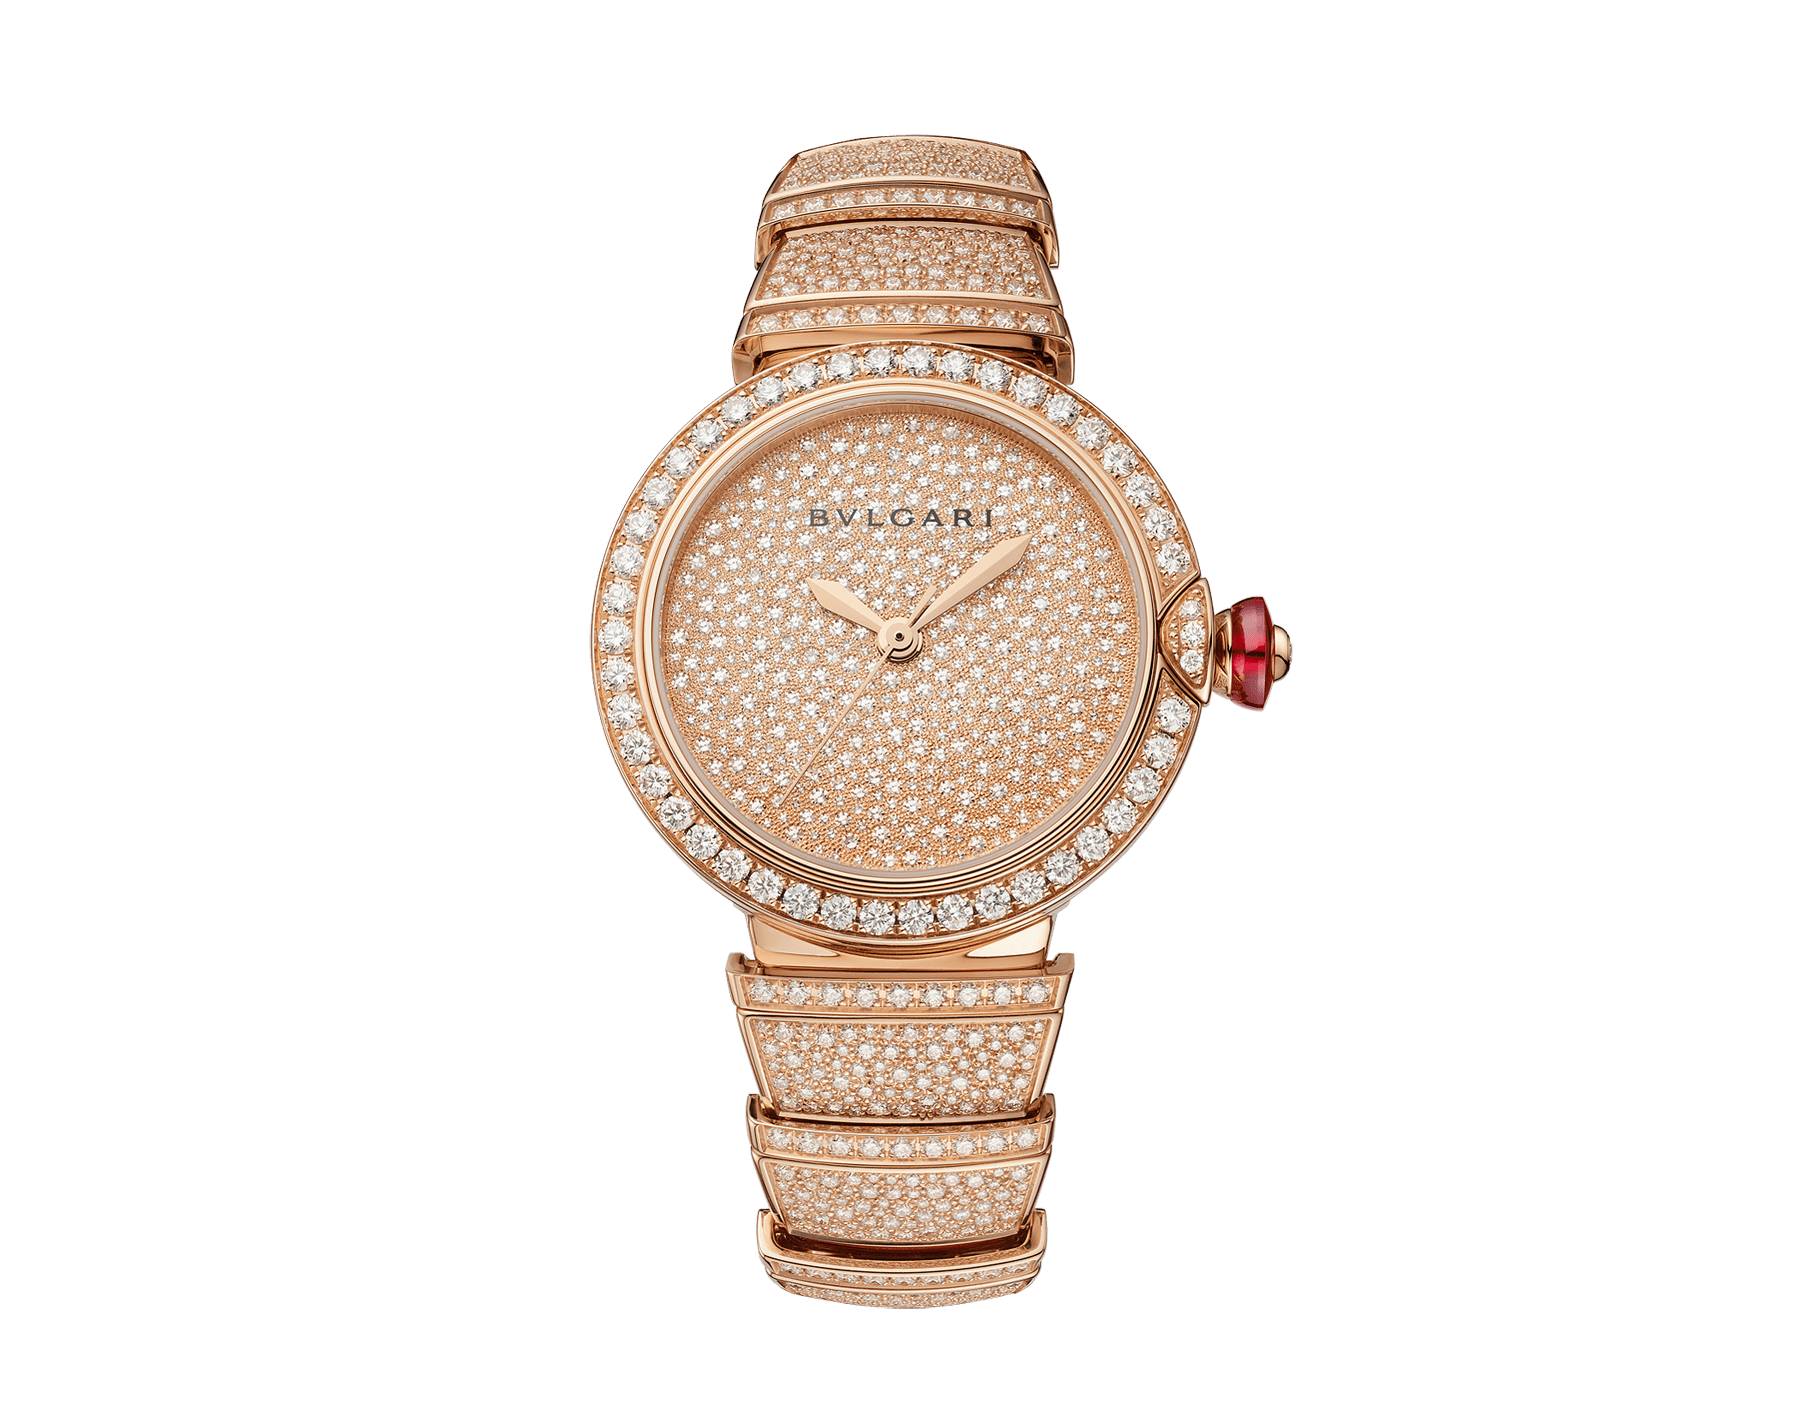 LVCEA watch in 18kt rose gold case and bracelet, both set with brilliant-cut diamonds, and full pavé diamond dial. 102617 image 1